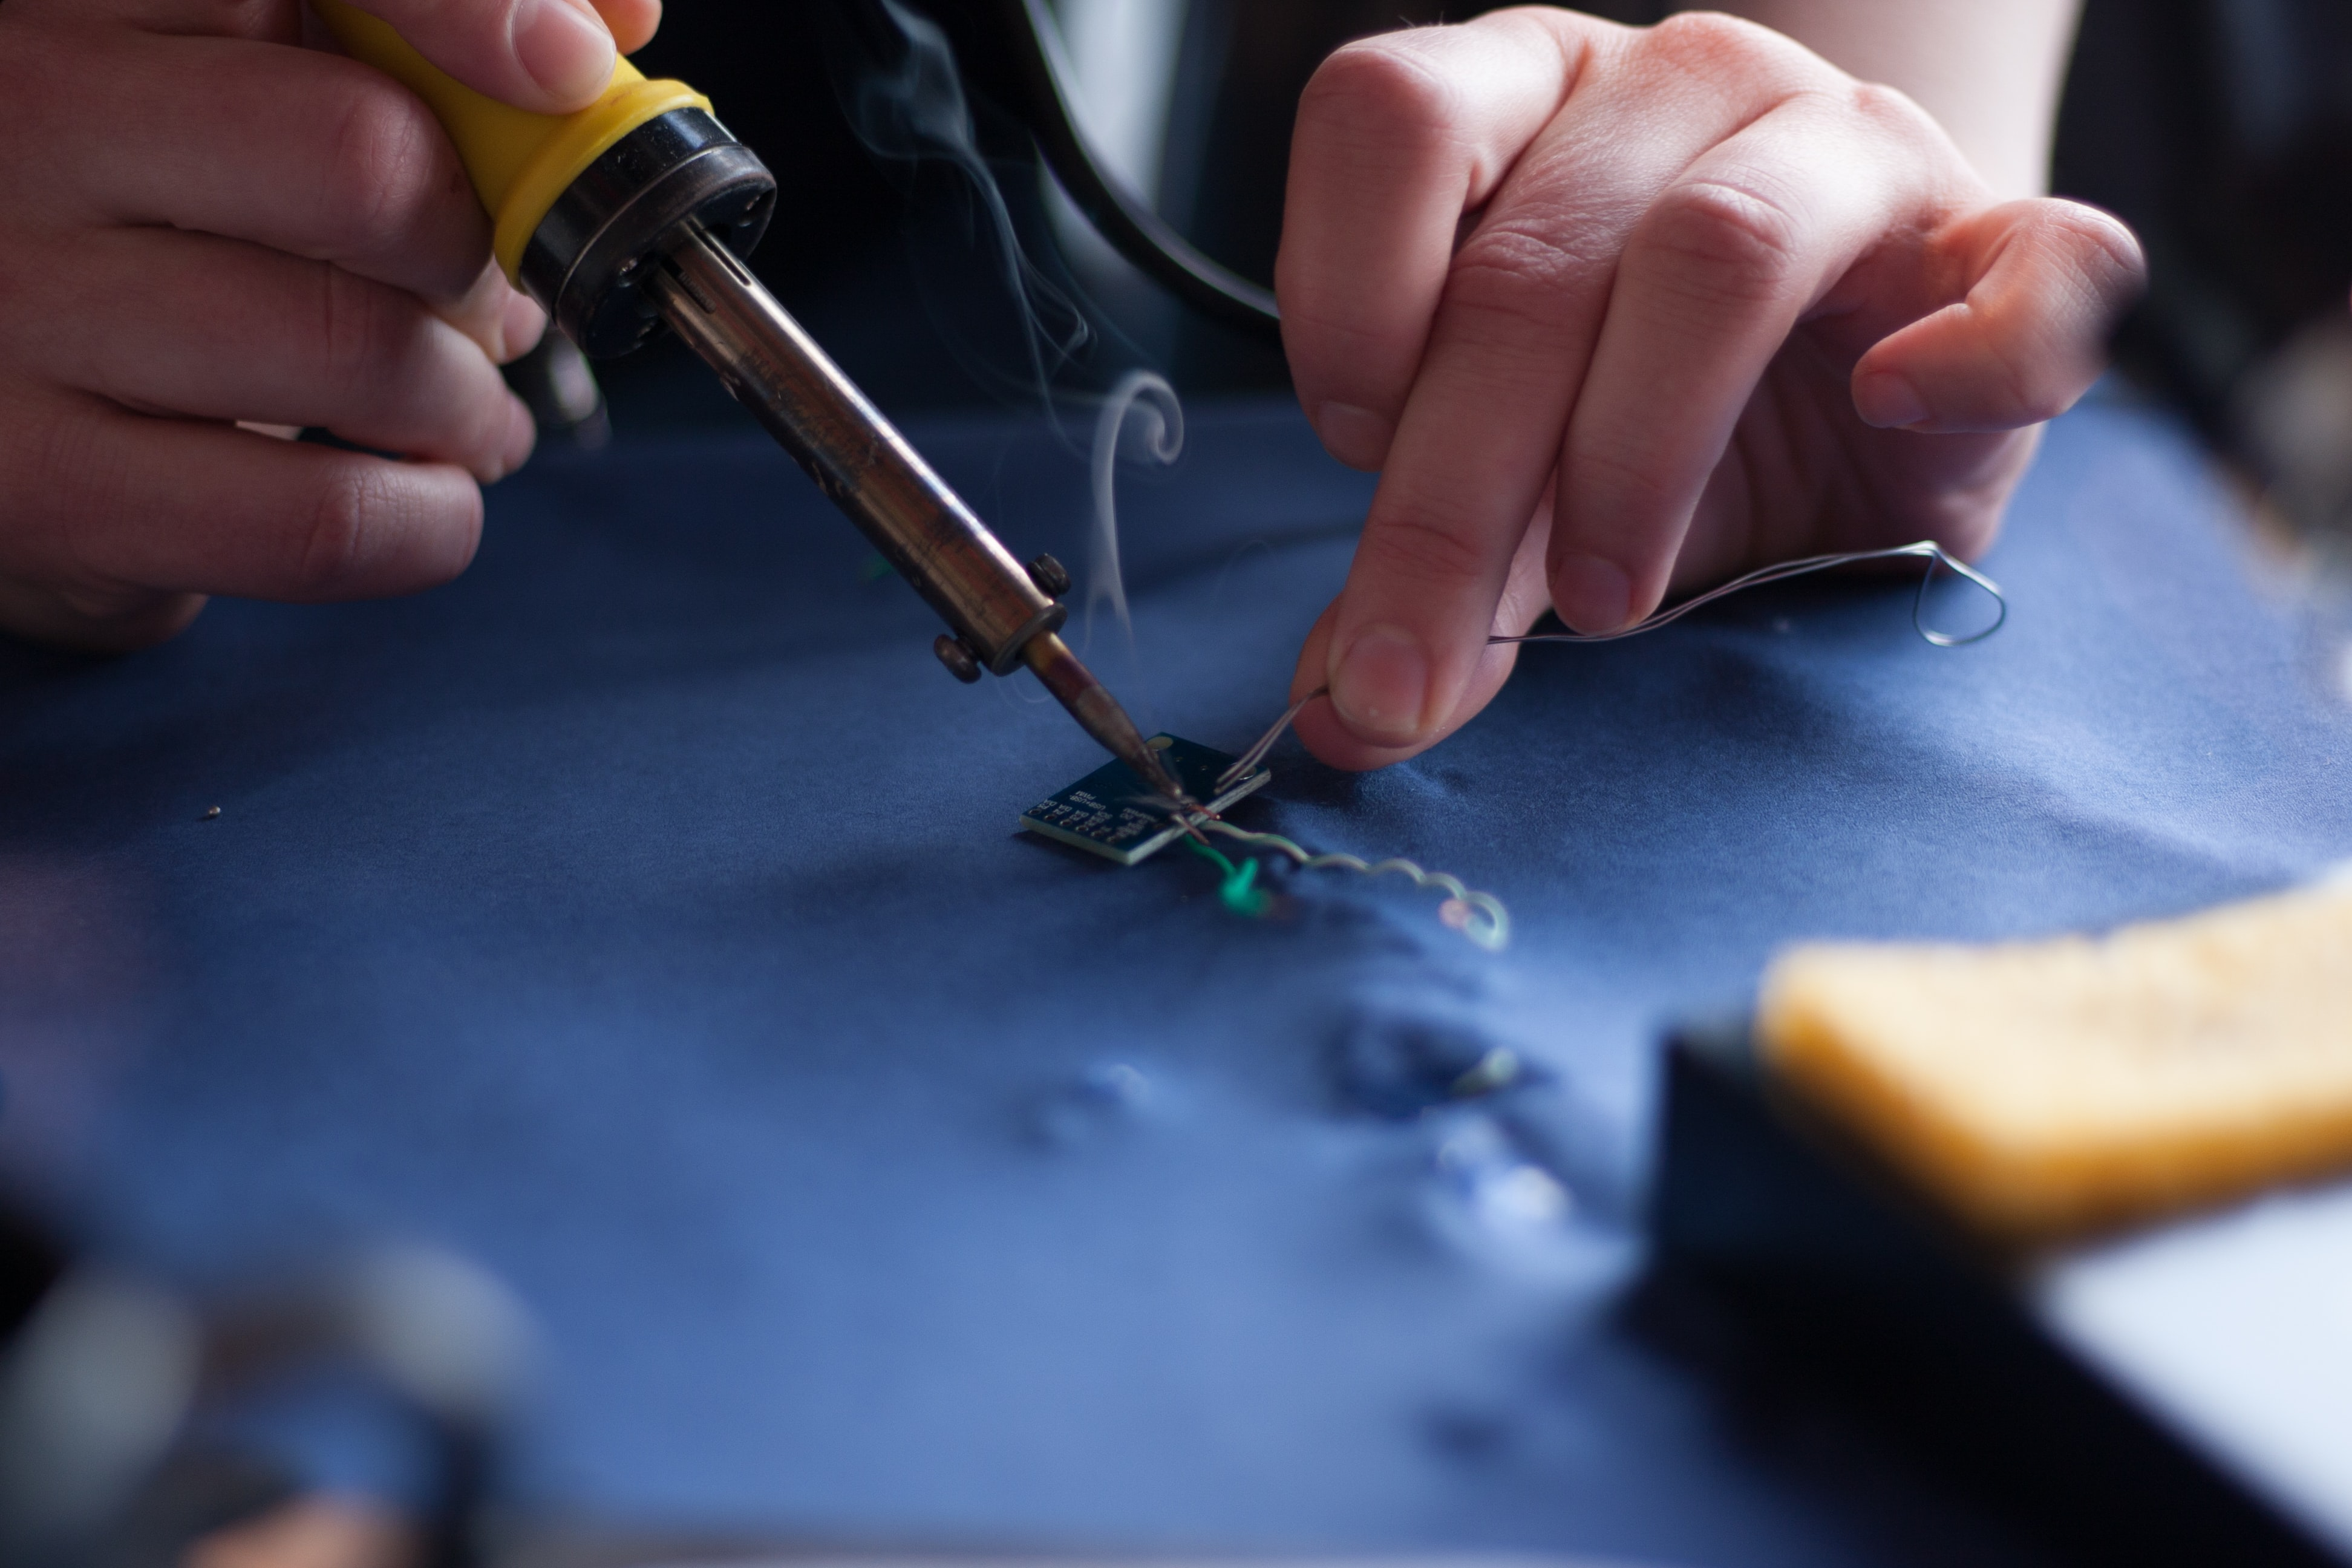 person using soldering iron